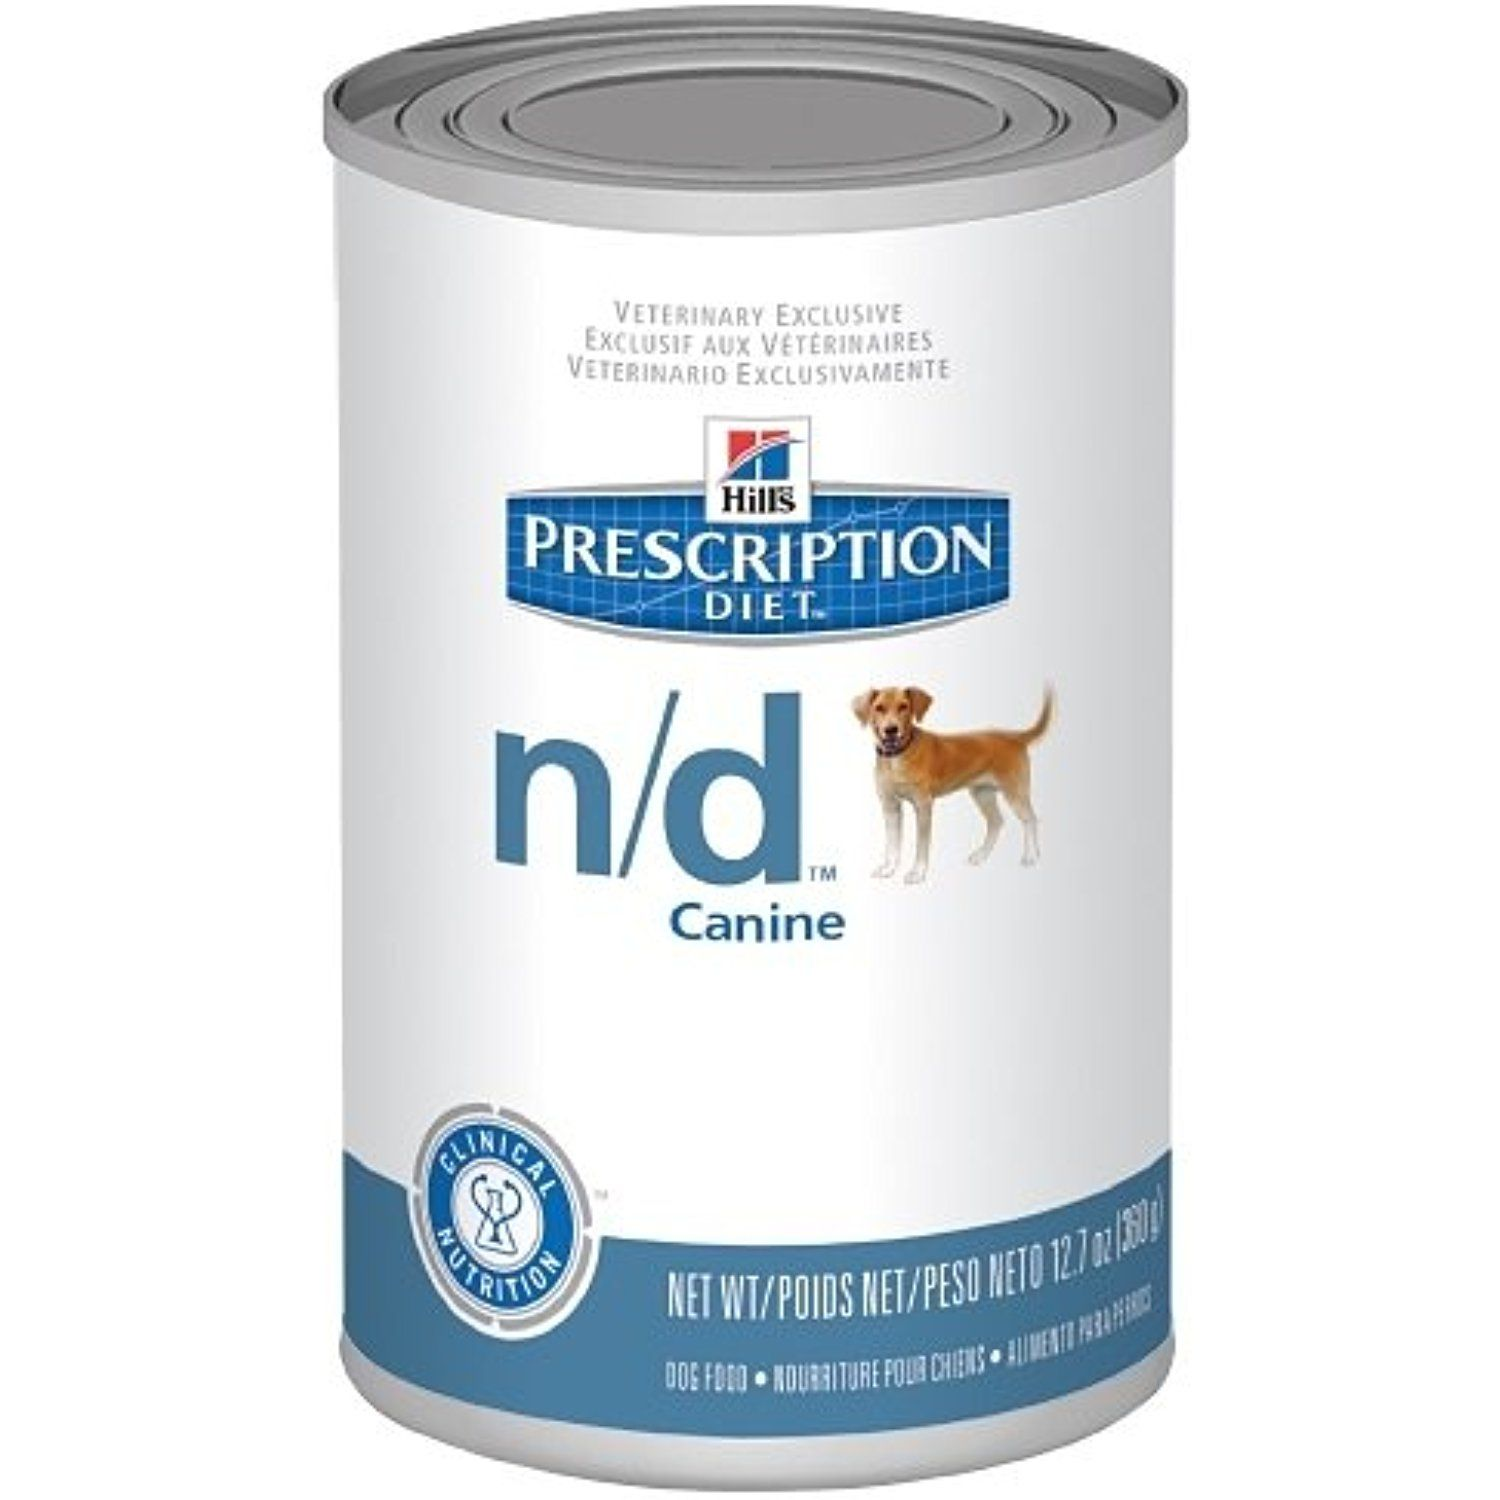 Hill S Prescription Diet N D Dog Food 12 12 7 Oz Cans The Details Can Be Found By Clicking On The Image Canned Dog Food Dog Food Recipes Free Dog Food